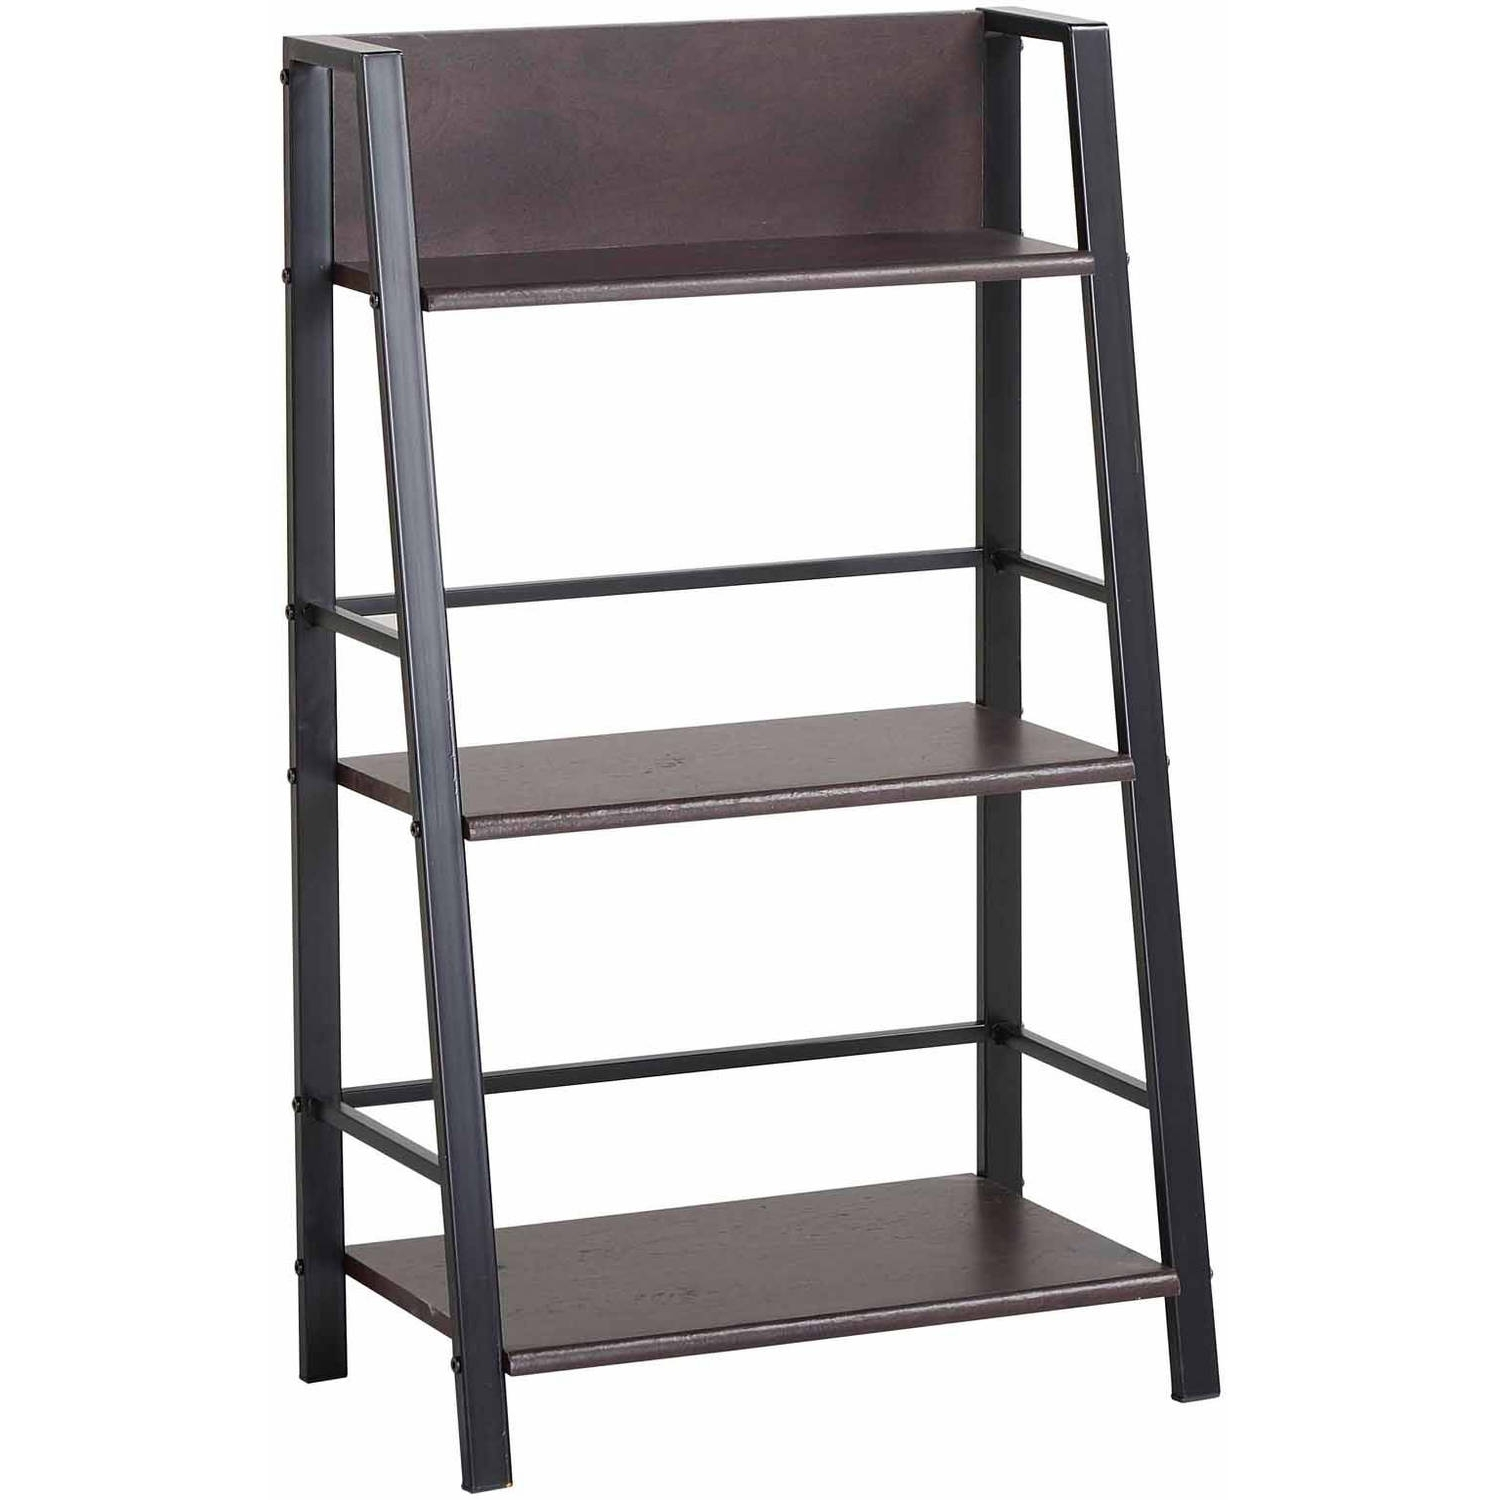 Well Known Mainstays 3 Shelf Bookcases Pertaining To Mainstays 3 Shelf Bookcase, Multiple Finishes – Walmart (View 14 of 15)